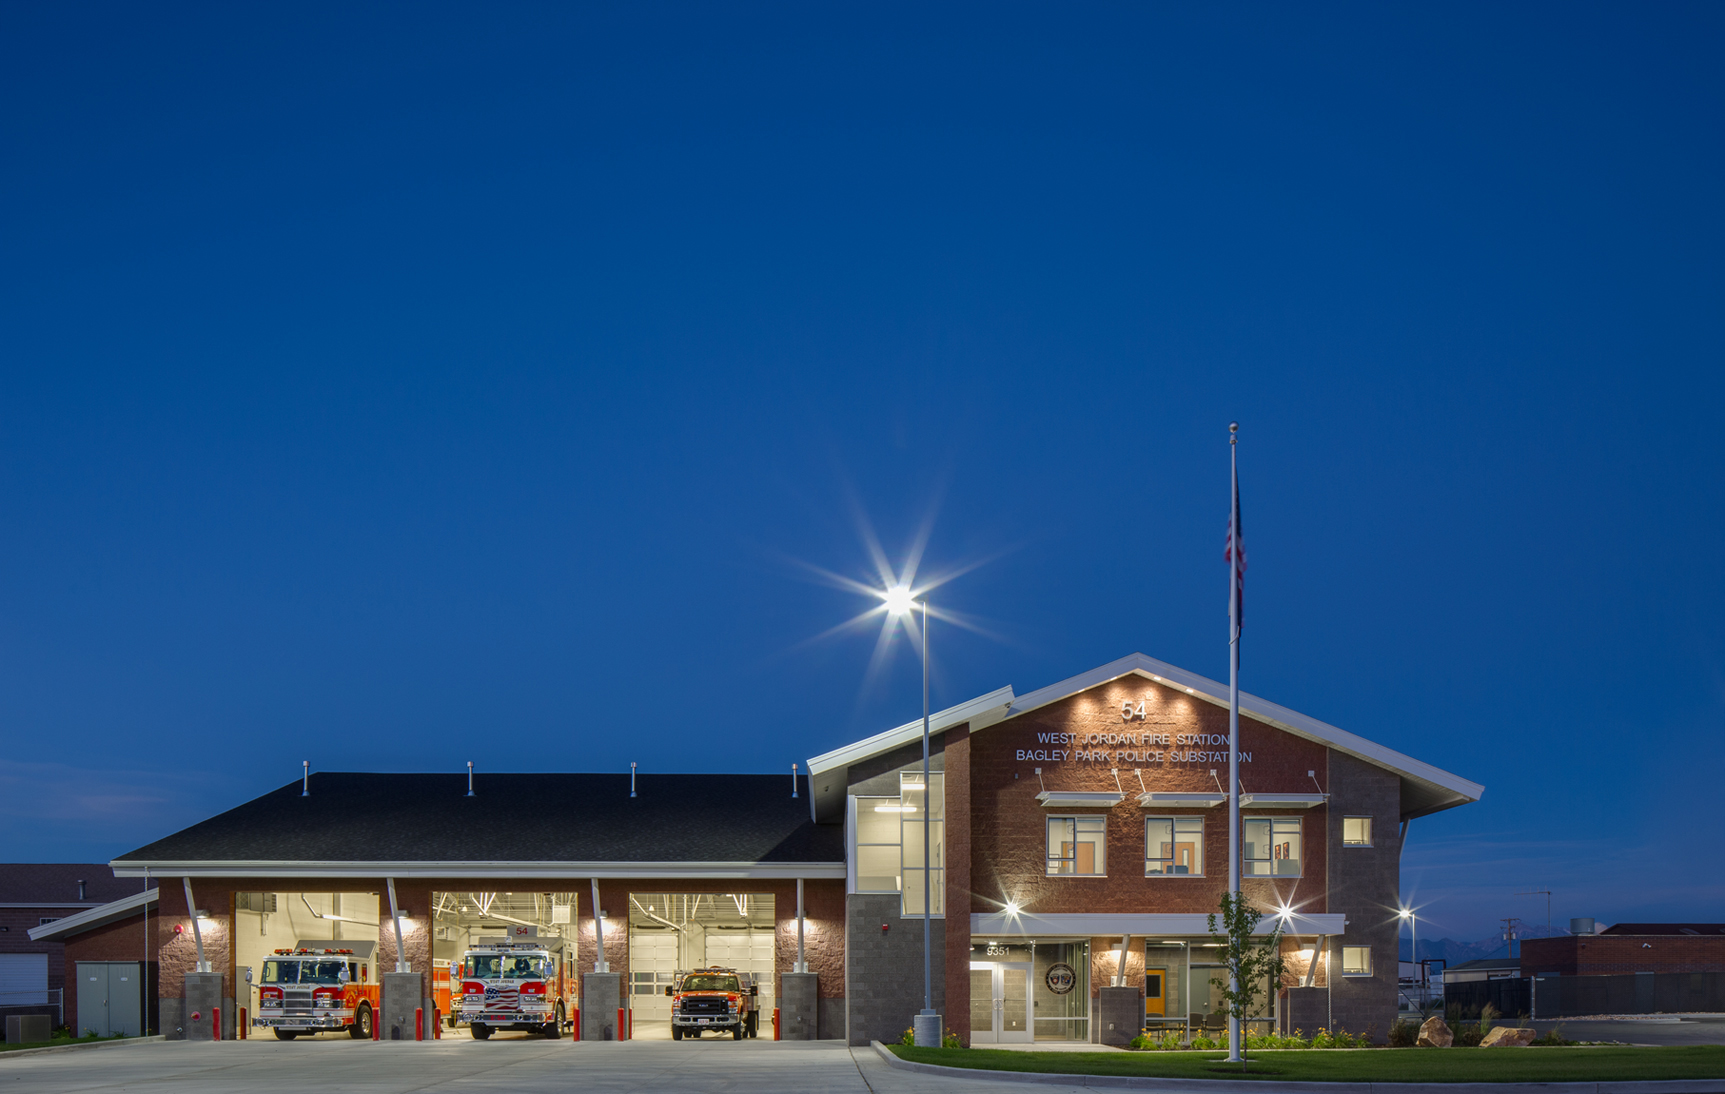 Exterior view of fire station at dusk with bay doors open and fire trucks in bays. Architectural Photography by: Paul Richer / RICHER IMAGES